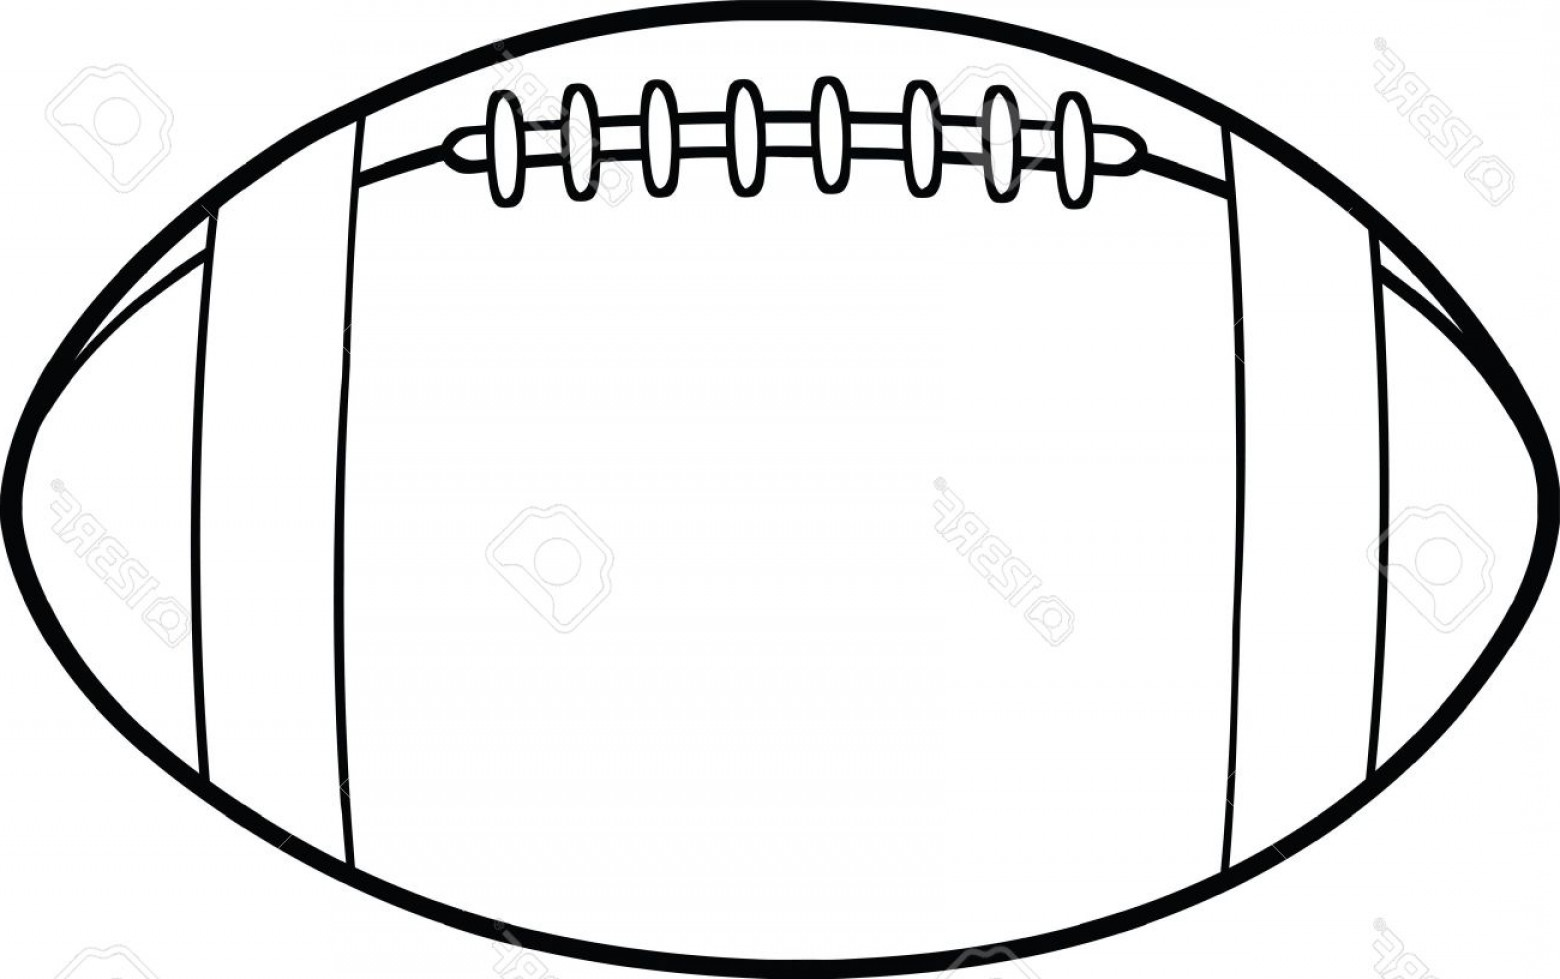 Black And White Vector American Football: Photoblack And White American Football Ball Cartoon Illustration